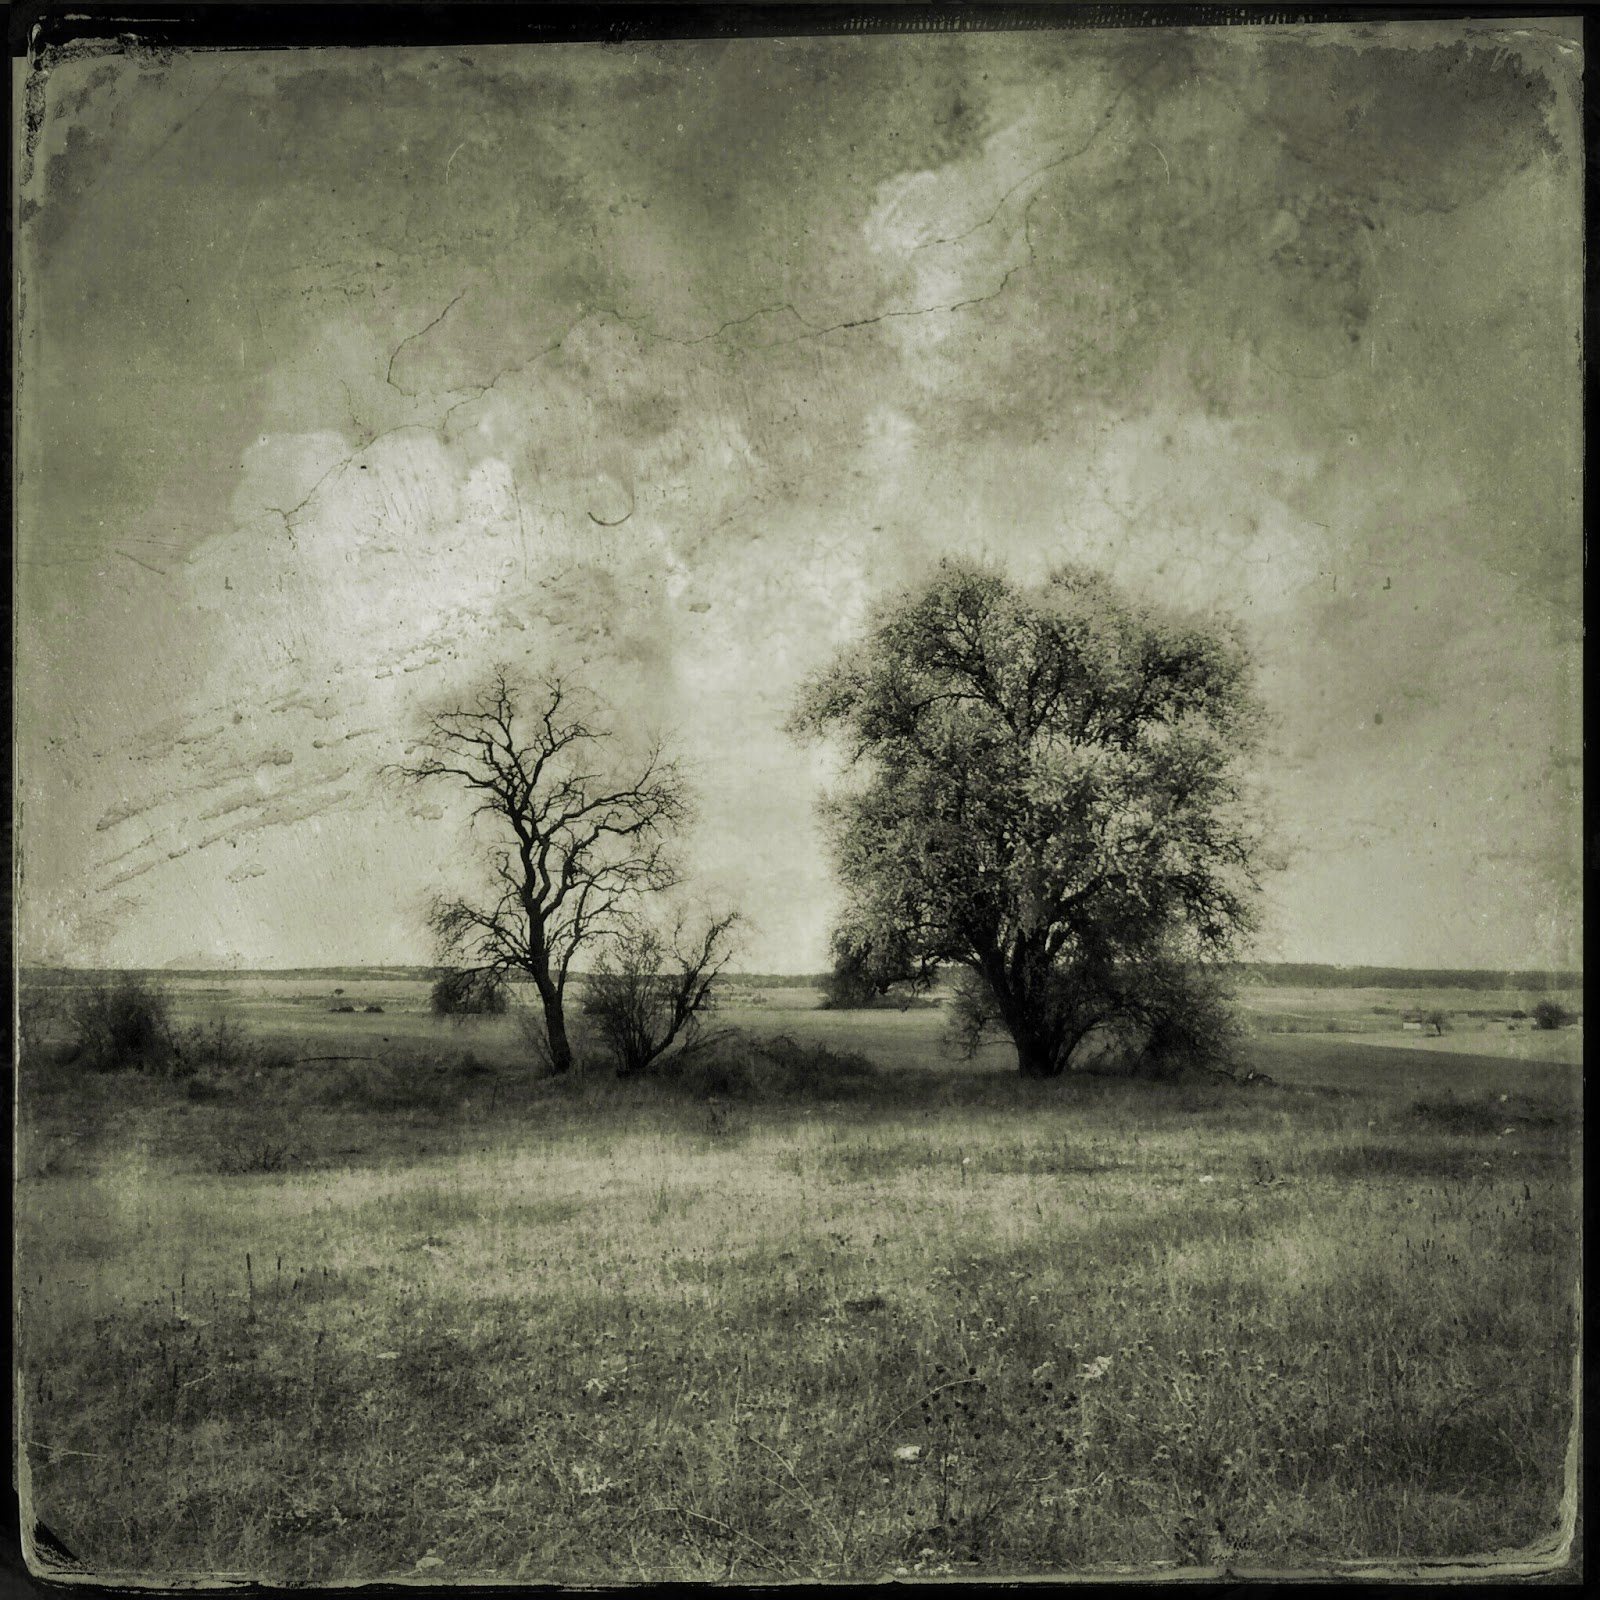 iphoneography, iphoneart, landscape Photo pictorialism, the new era museum, iphone photography, Mobile photography, iphone, eyeem, nem